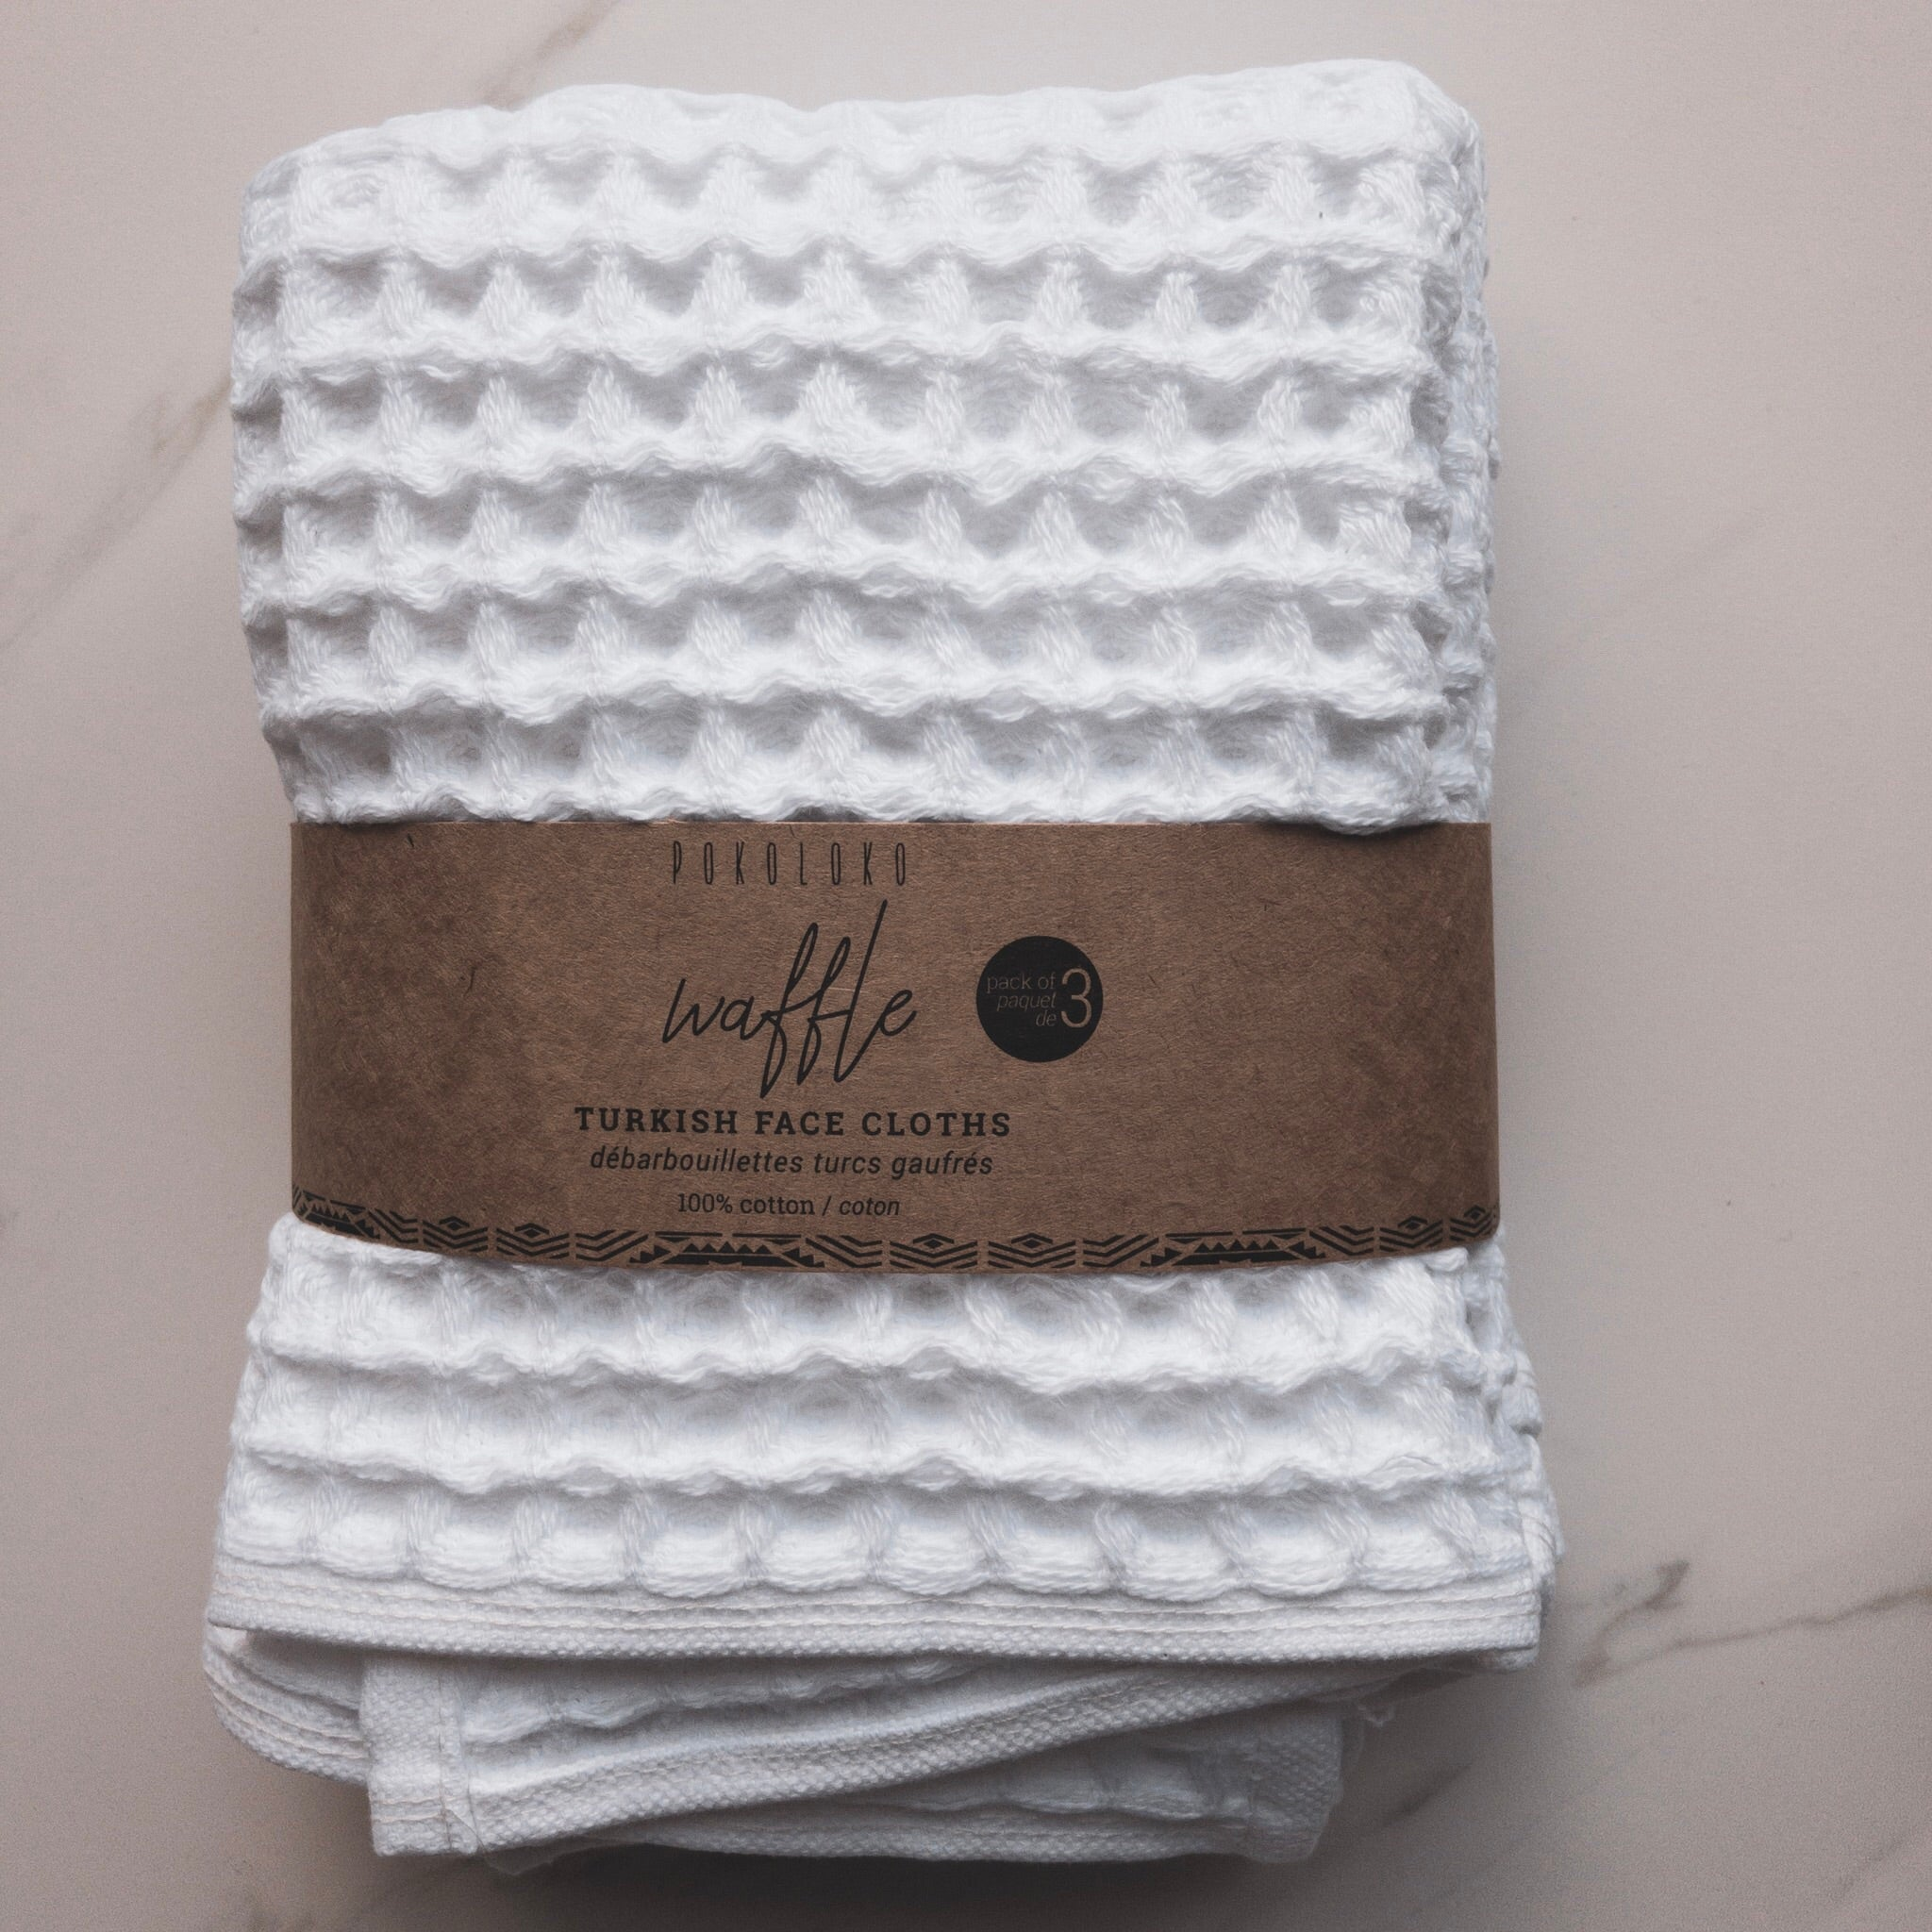 Pokoloko Waffle Face Cloths (pack of 3)